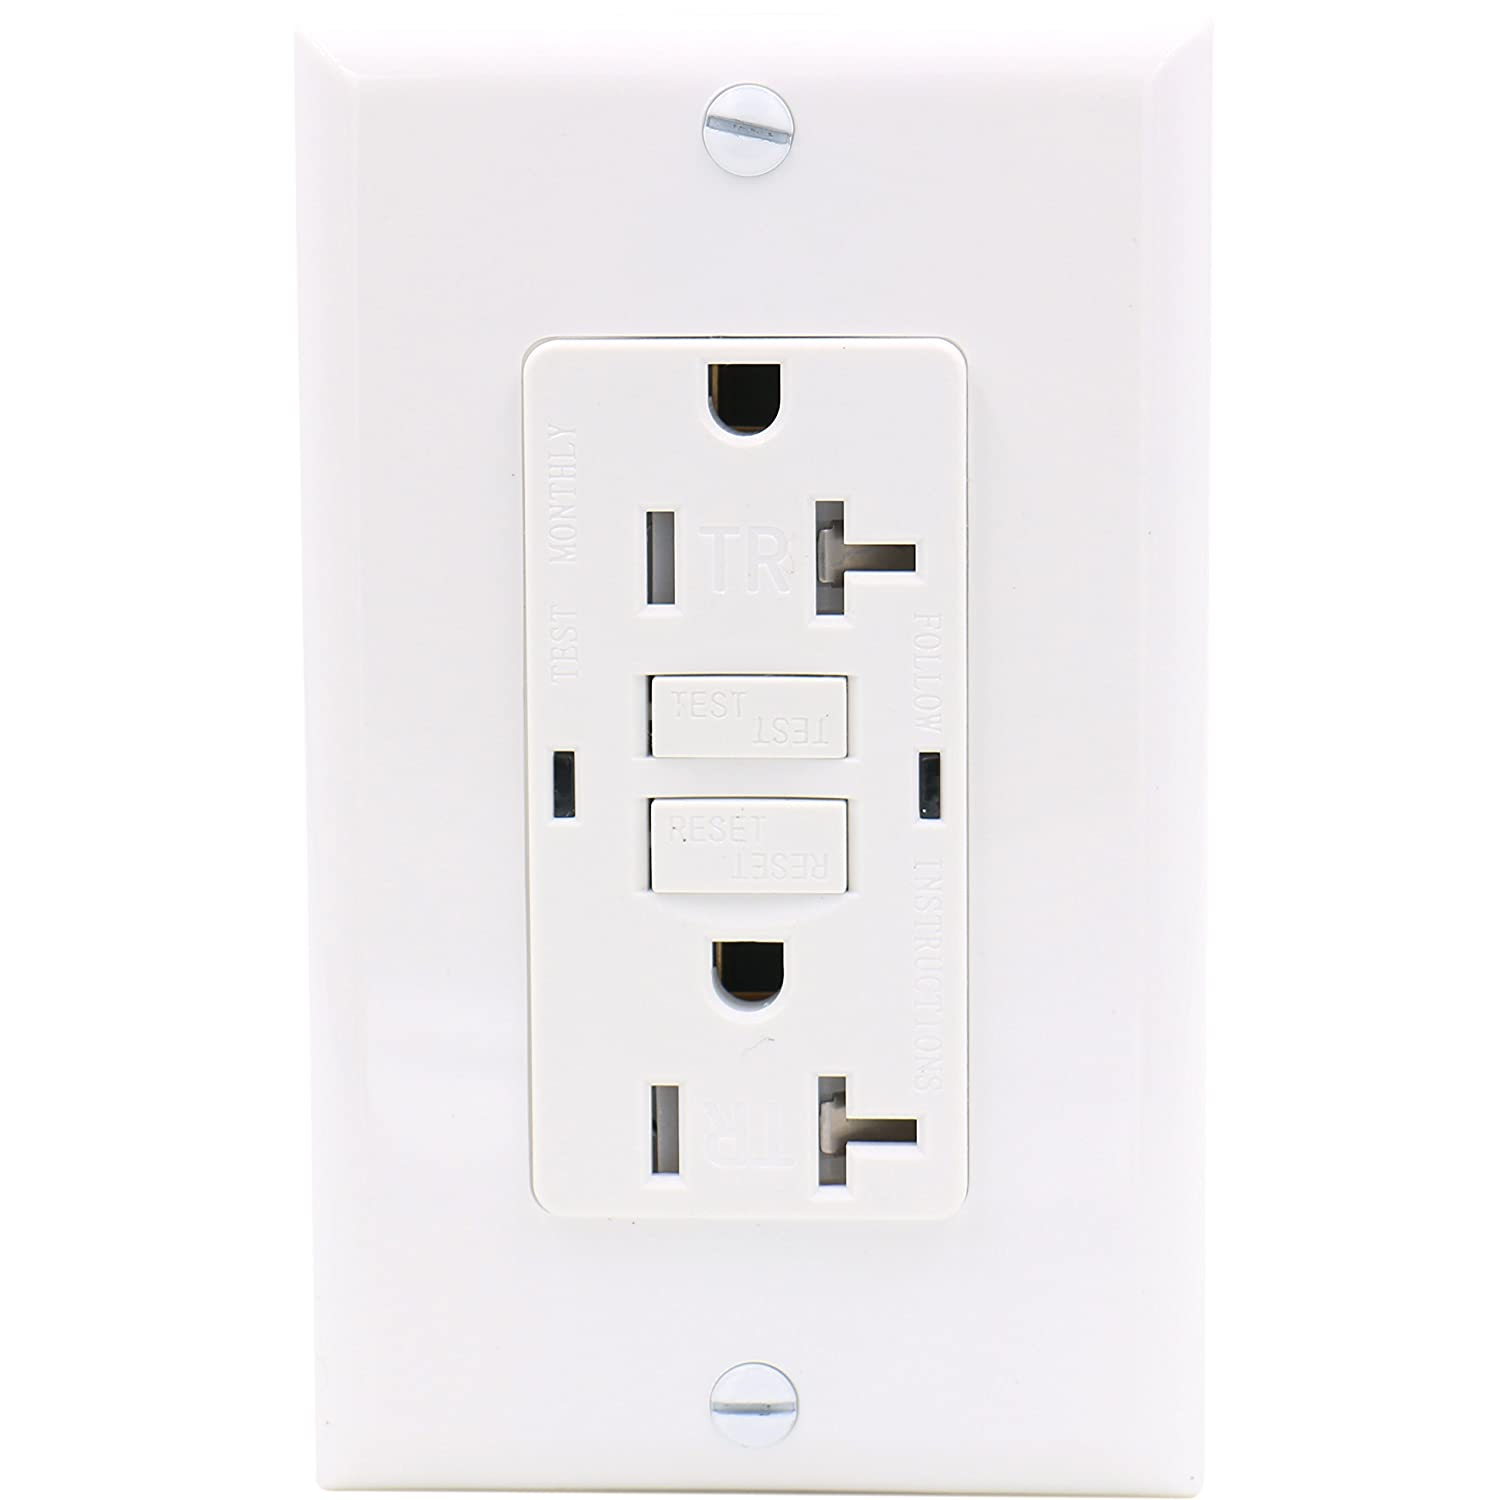 Baomain GFCI Outlet Receptacle 20Amp 120VAC 60Hz Tamper-Resistant Outlet, Ground Fault Circuit Interruptor, LED Indicator UL& CUL Listed with Wall Plate White GP GFR-20TR-PW